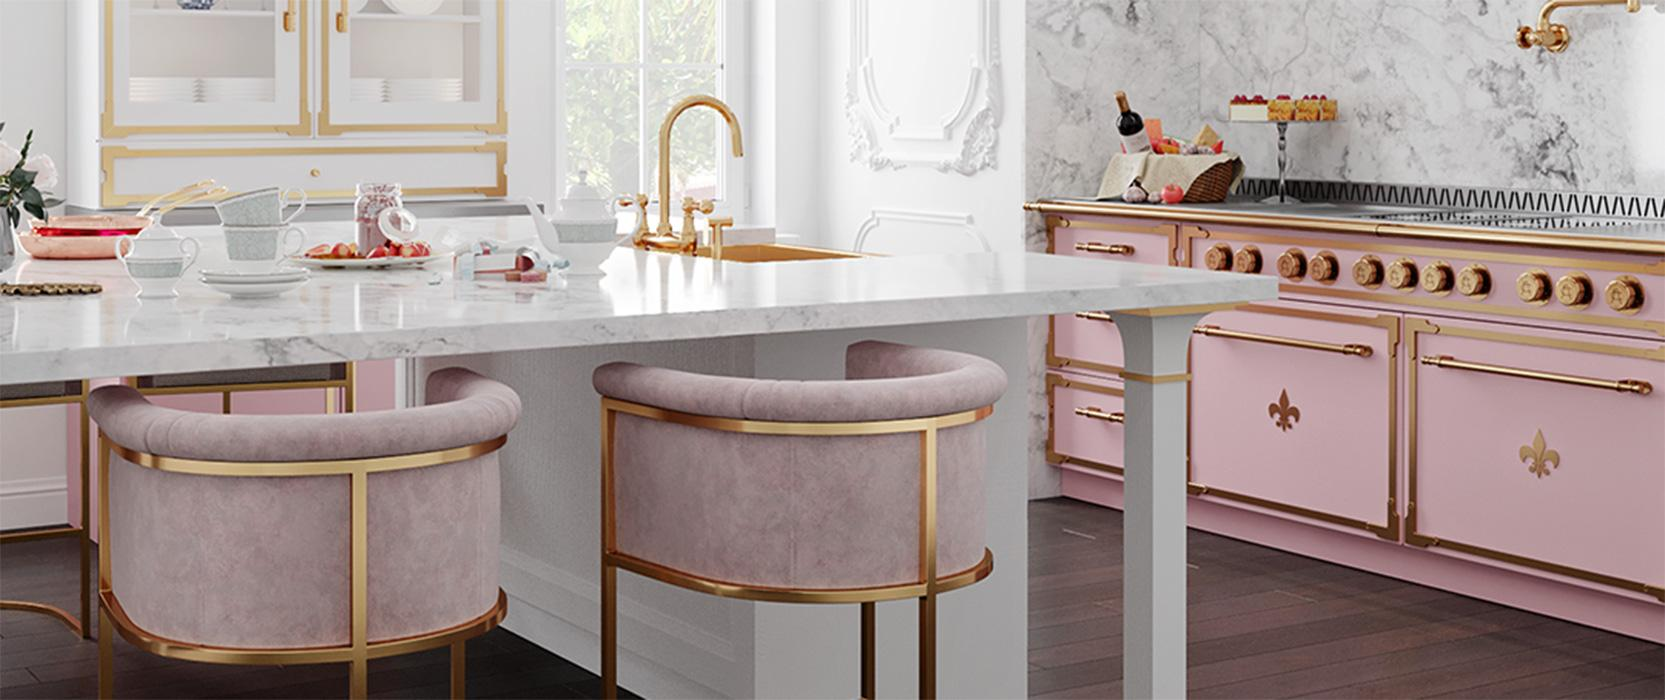 L'Atelier pale pink stove in white custom kitchen with pale pink stools and marble coungertops